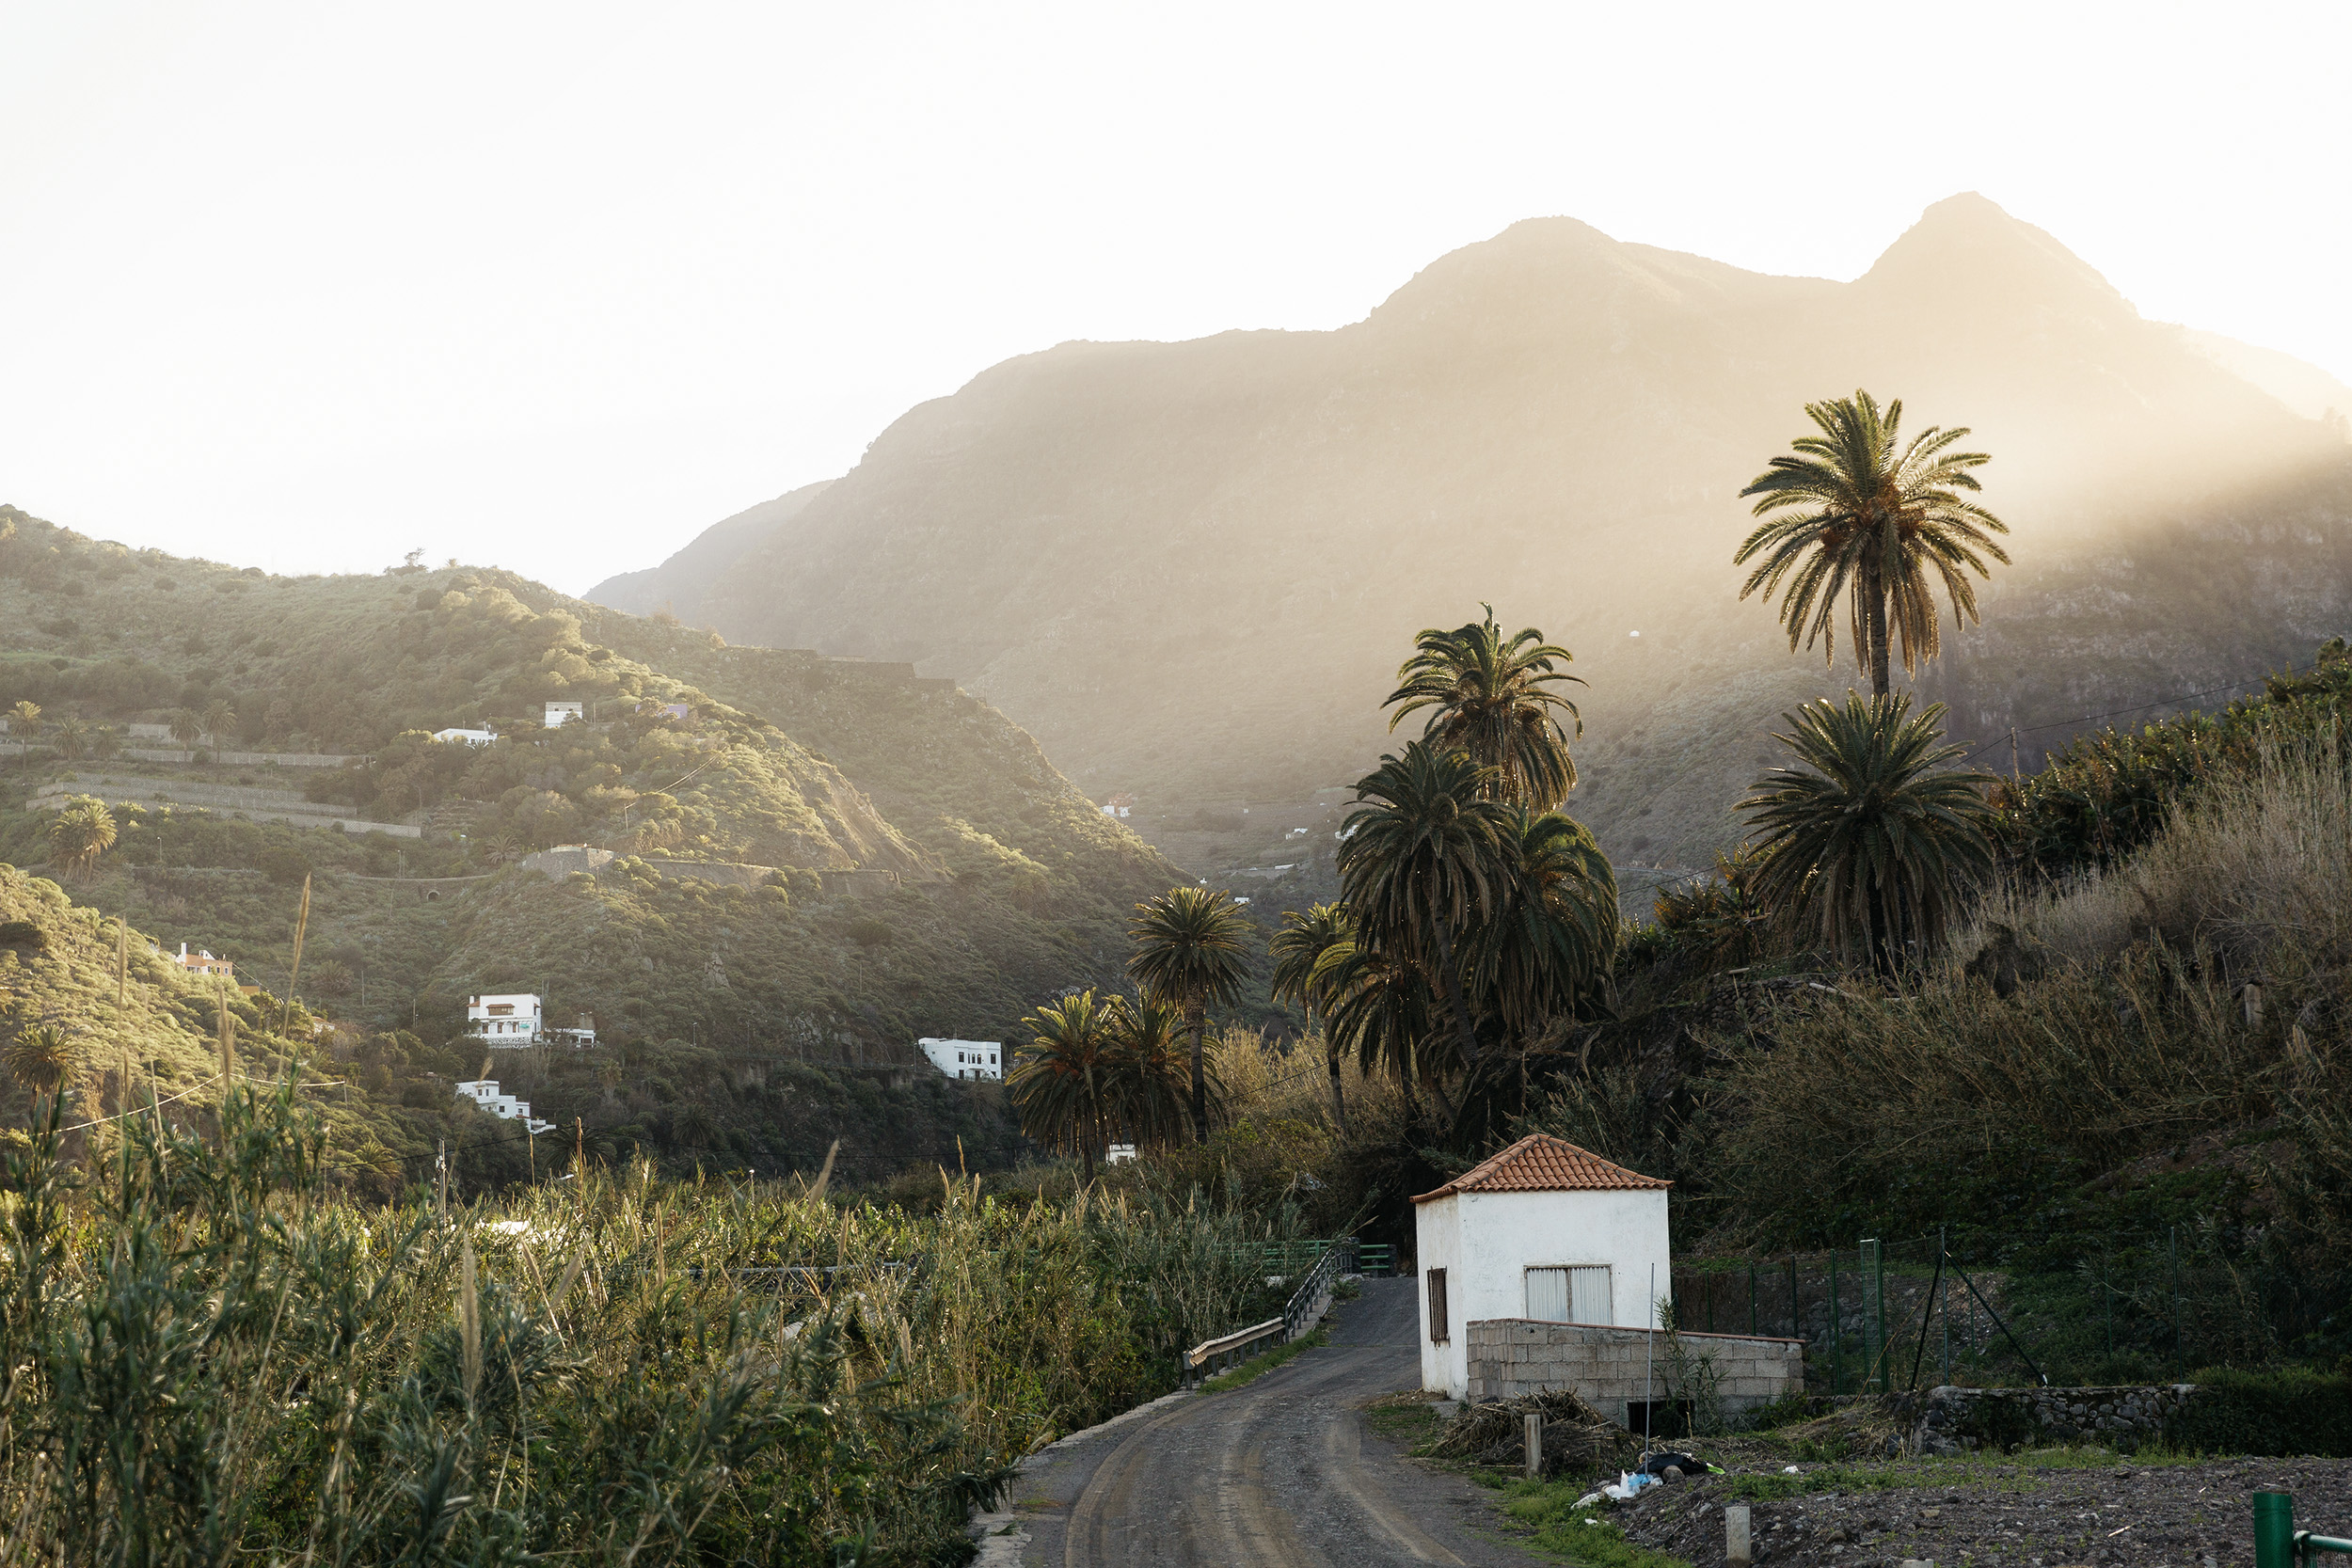 Sunset over La Hermigua in the Canary Islands by Rebecca Stumpf, Denver Boulder Colorado Editorial and Commercial Photographer.